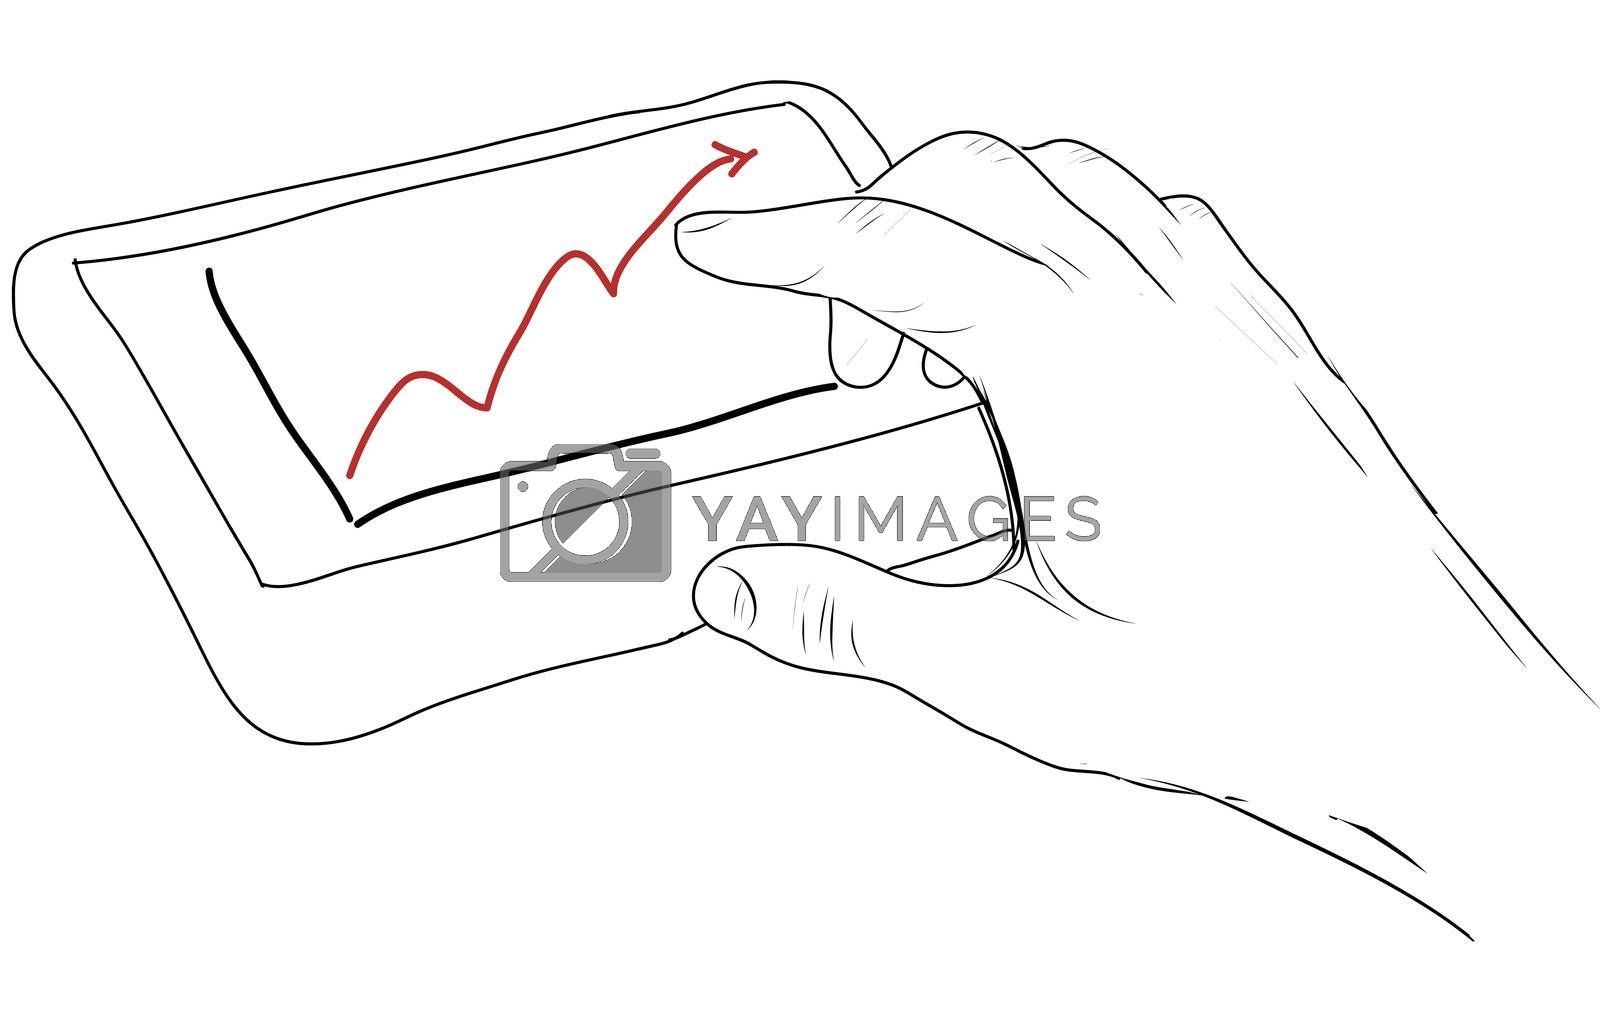 drawing  Tablet screen with graph and hand point